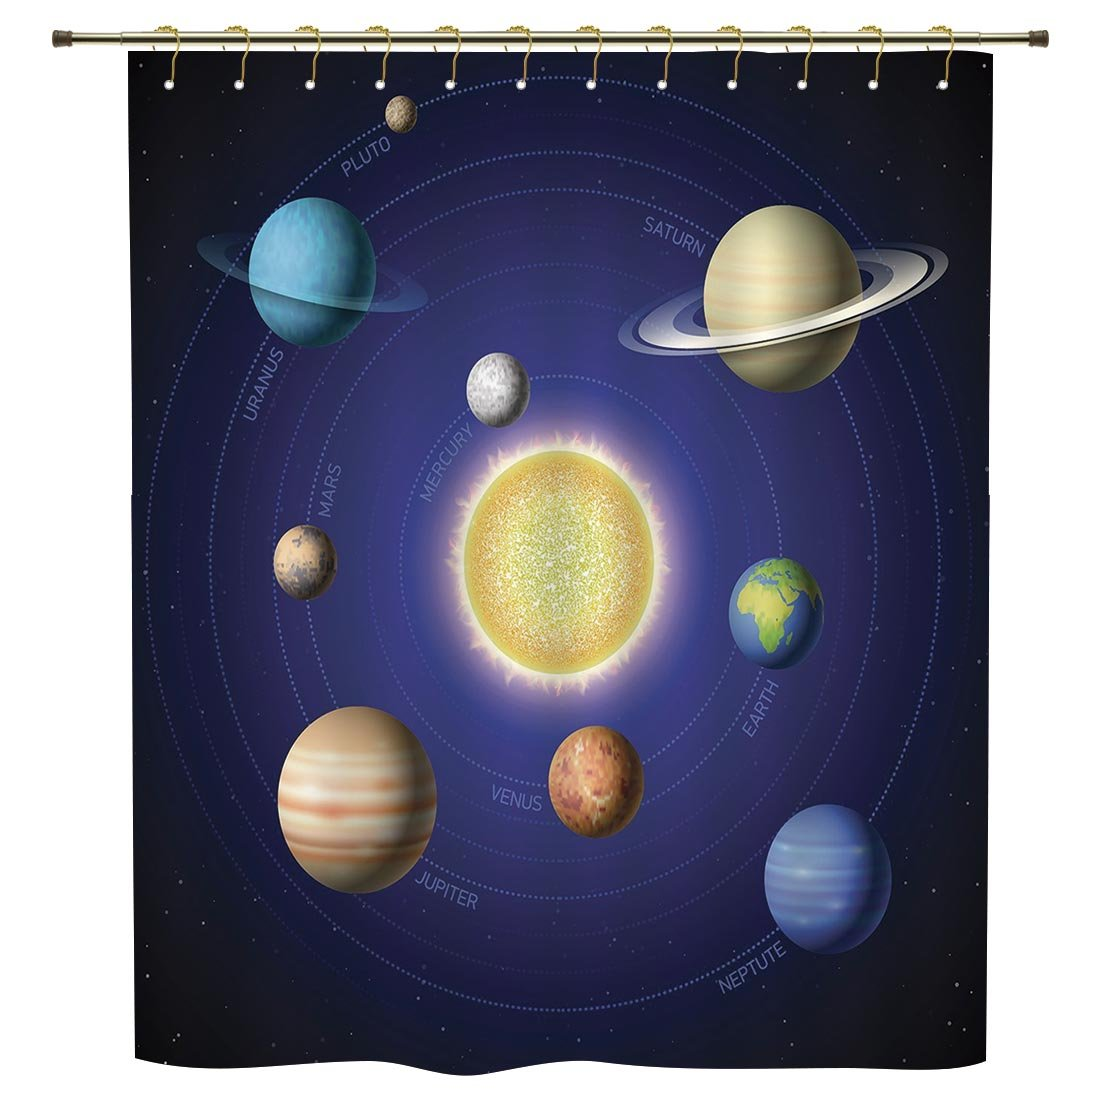 iPrint Shower Curtain,Space,Solar System Illustration Showing Planets around Sun Harmony of Galaxy Science Room Image,Multi,Polyester Shower Curtains Bathroom Decor Sets with Hooks